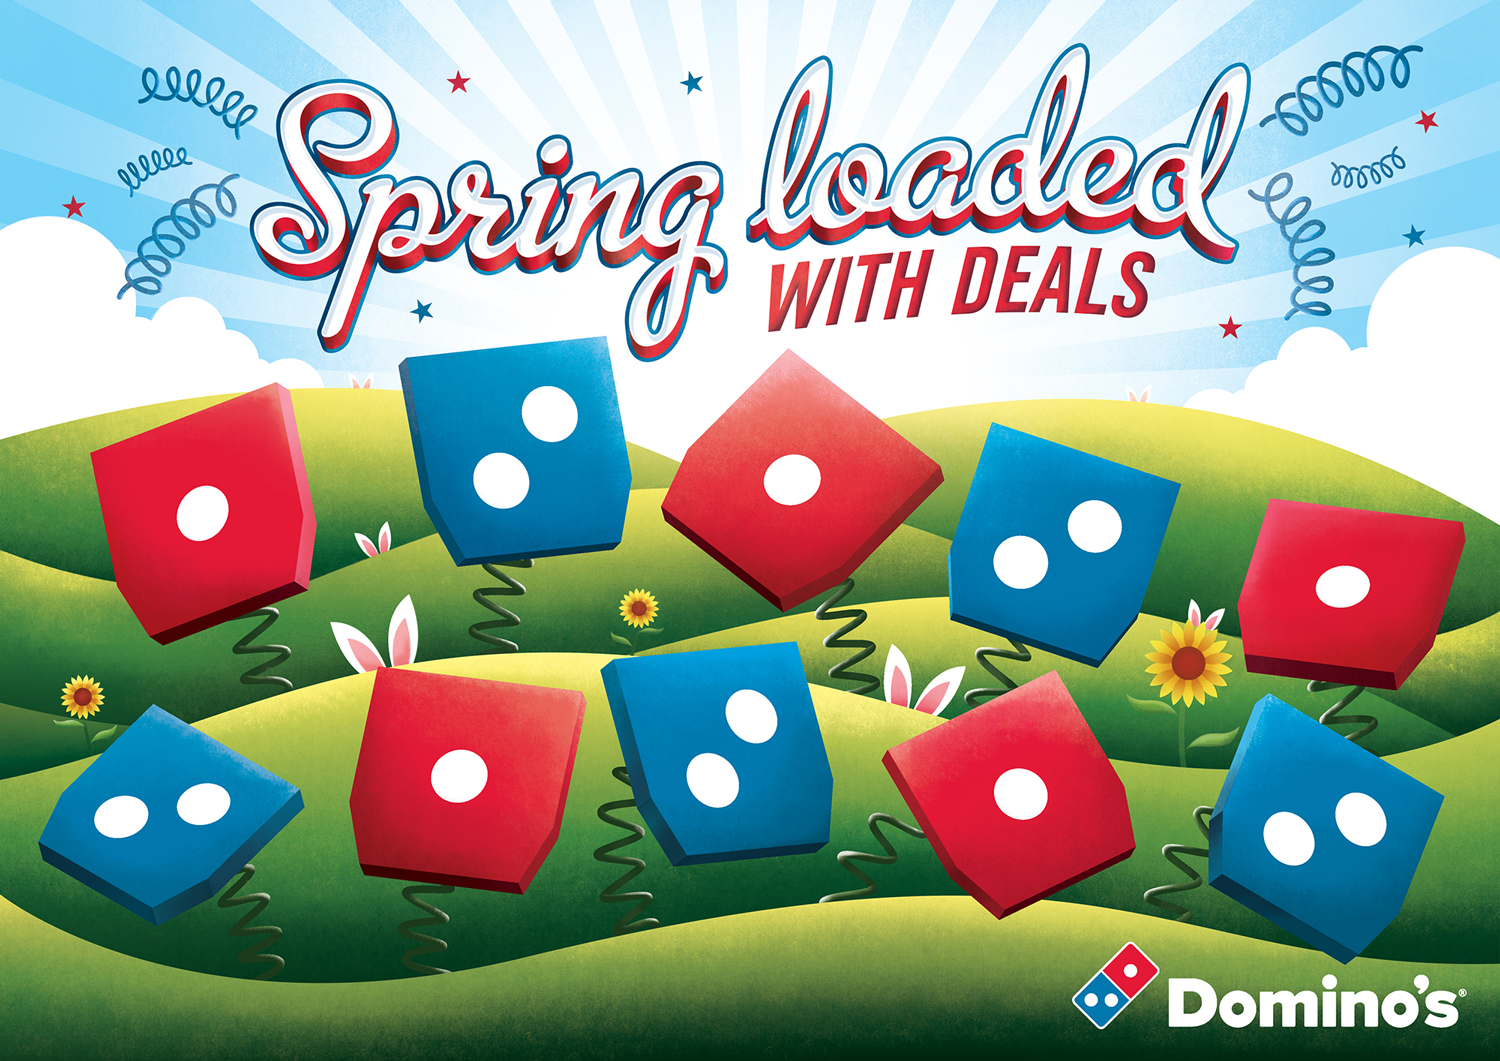 Dominos_Spring_Closed